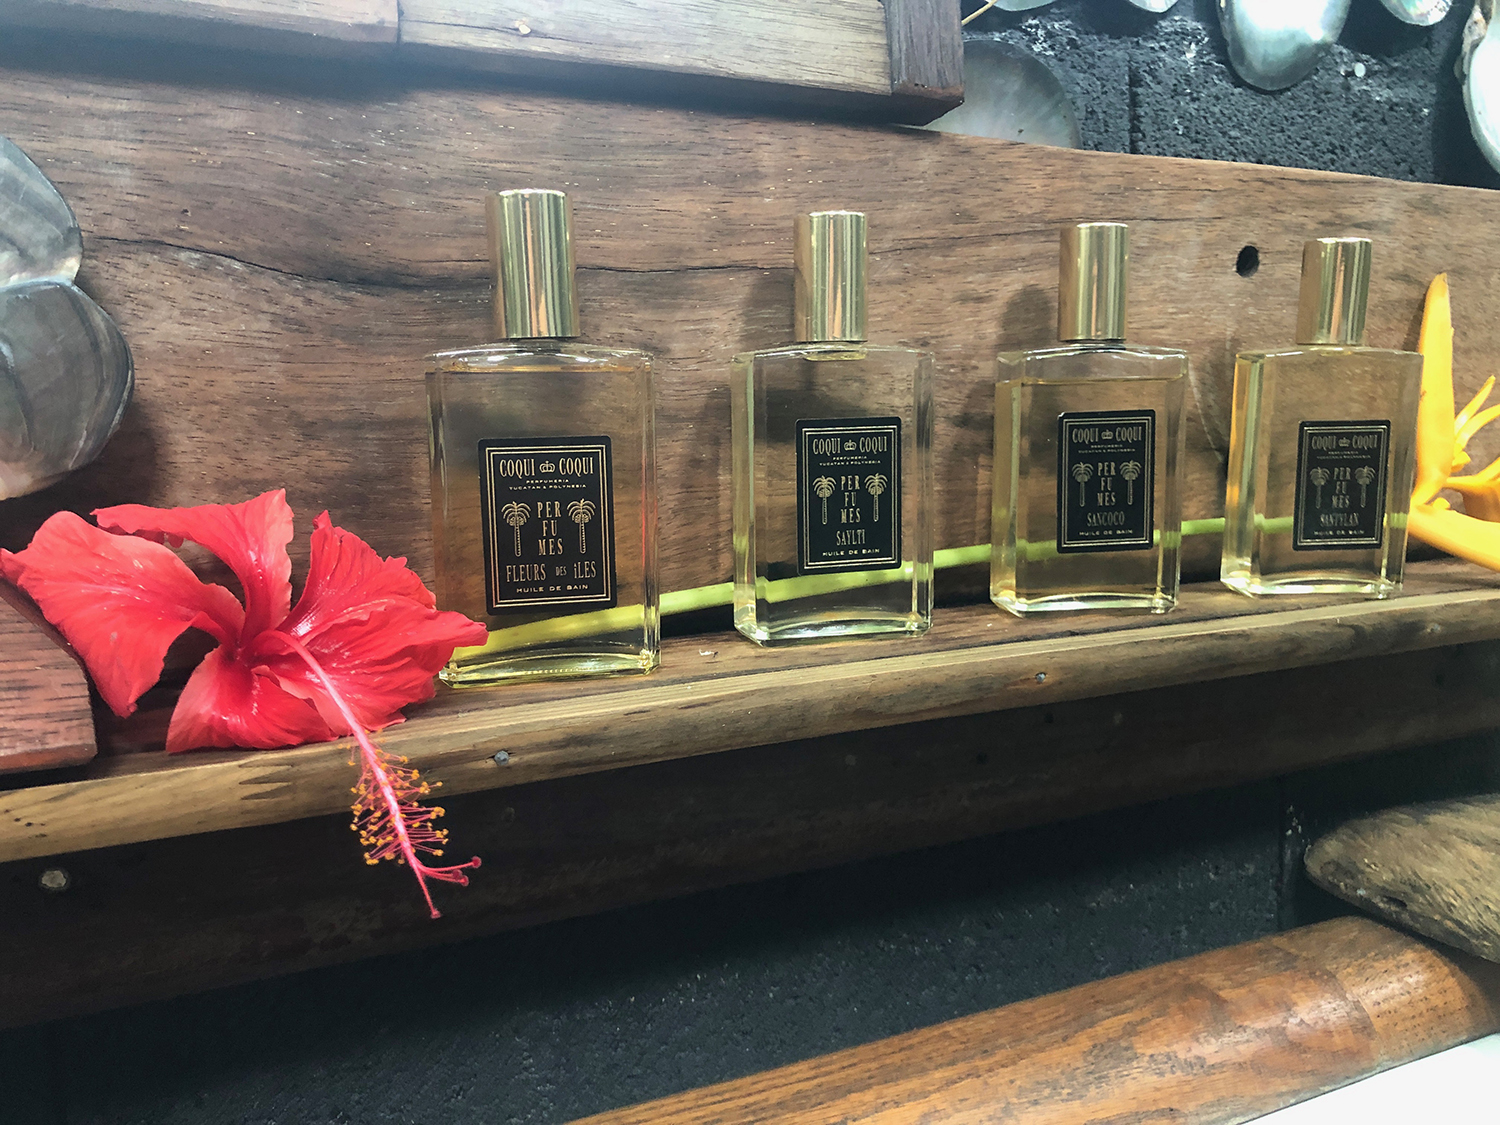 Guests can choose from the new Polynesia Collection of eight different fragrances to personalize each treatment.